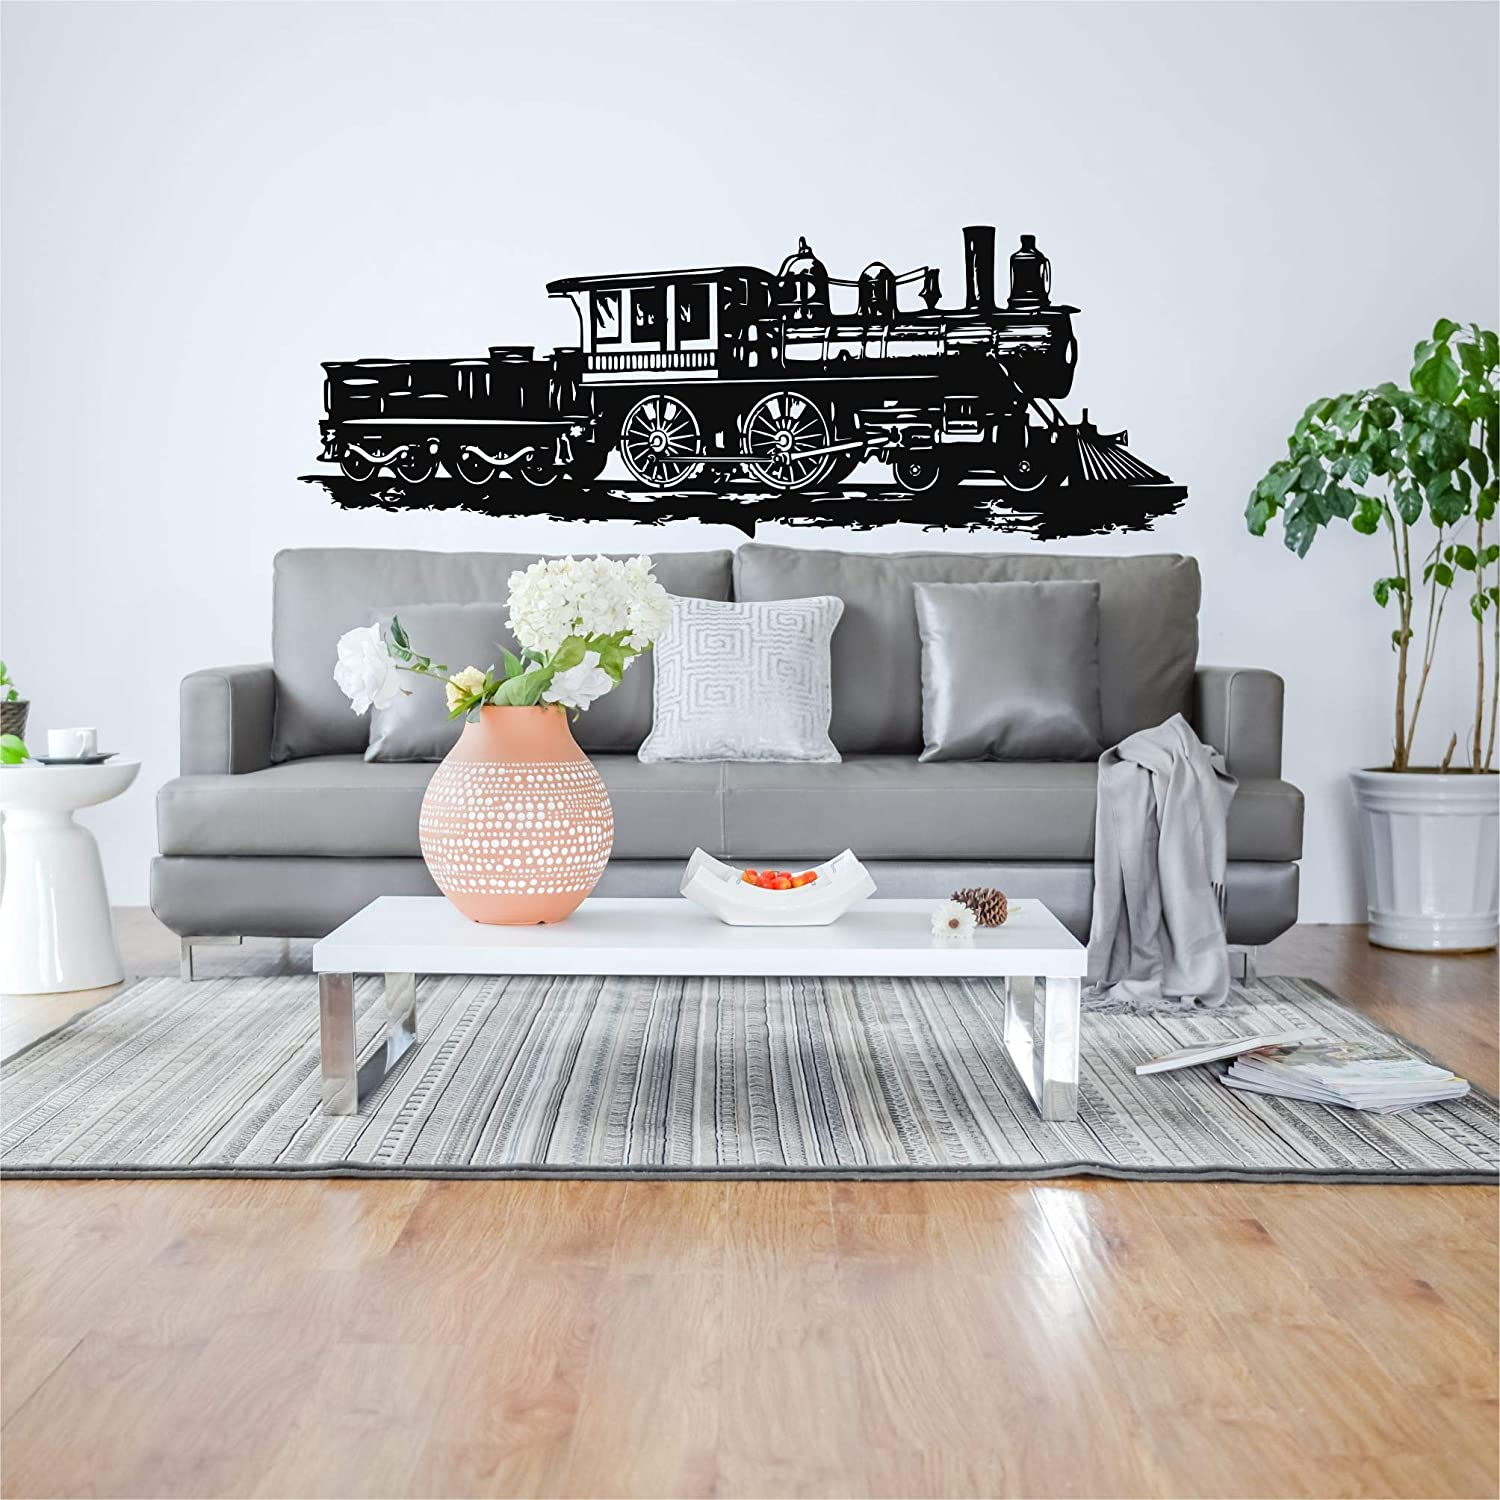 "Metal Wall Decor, Vintage Train Decor, Kids Room Decoration, Metal Train Sign, Metal Train Art (47""W x 17""H / 118x42cm)"